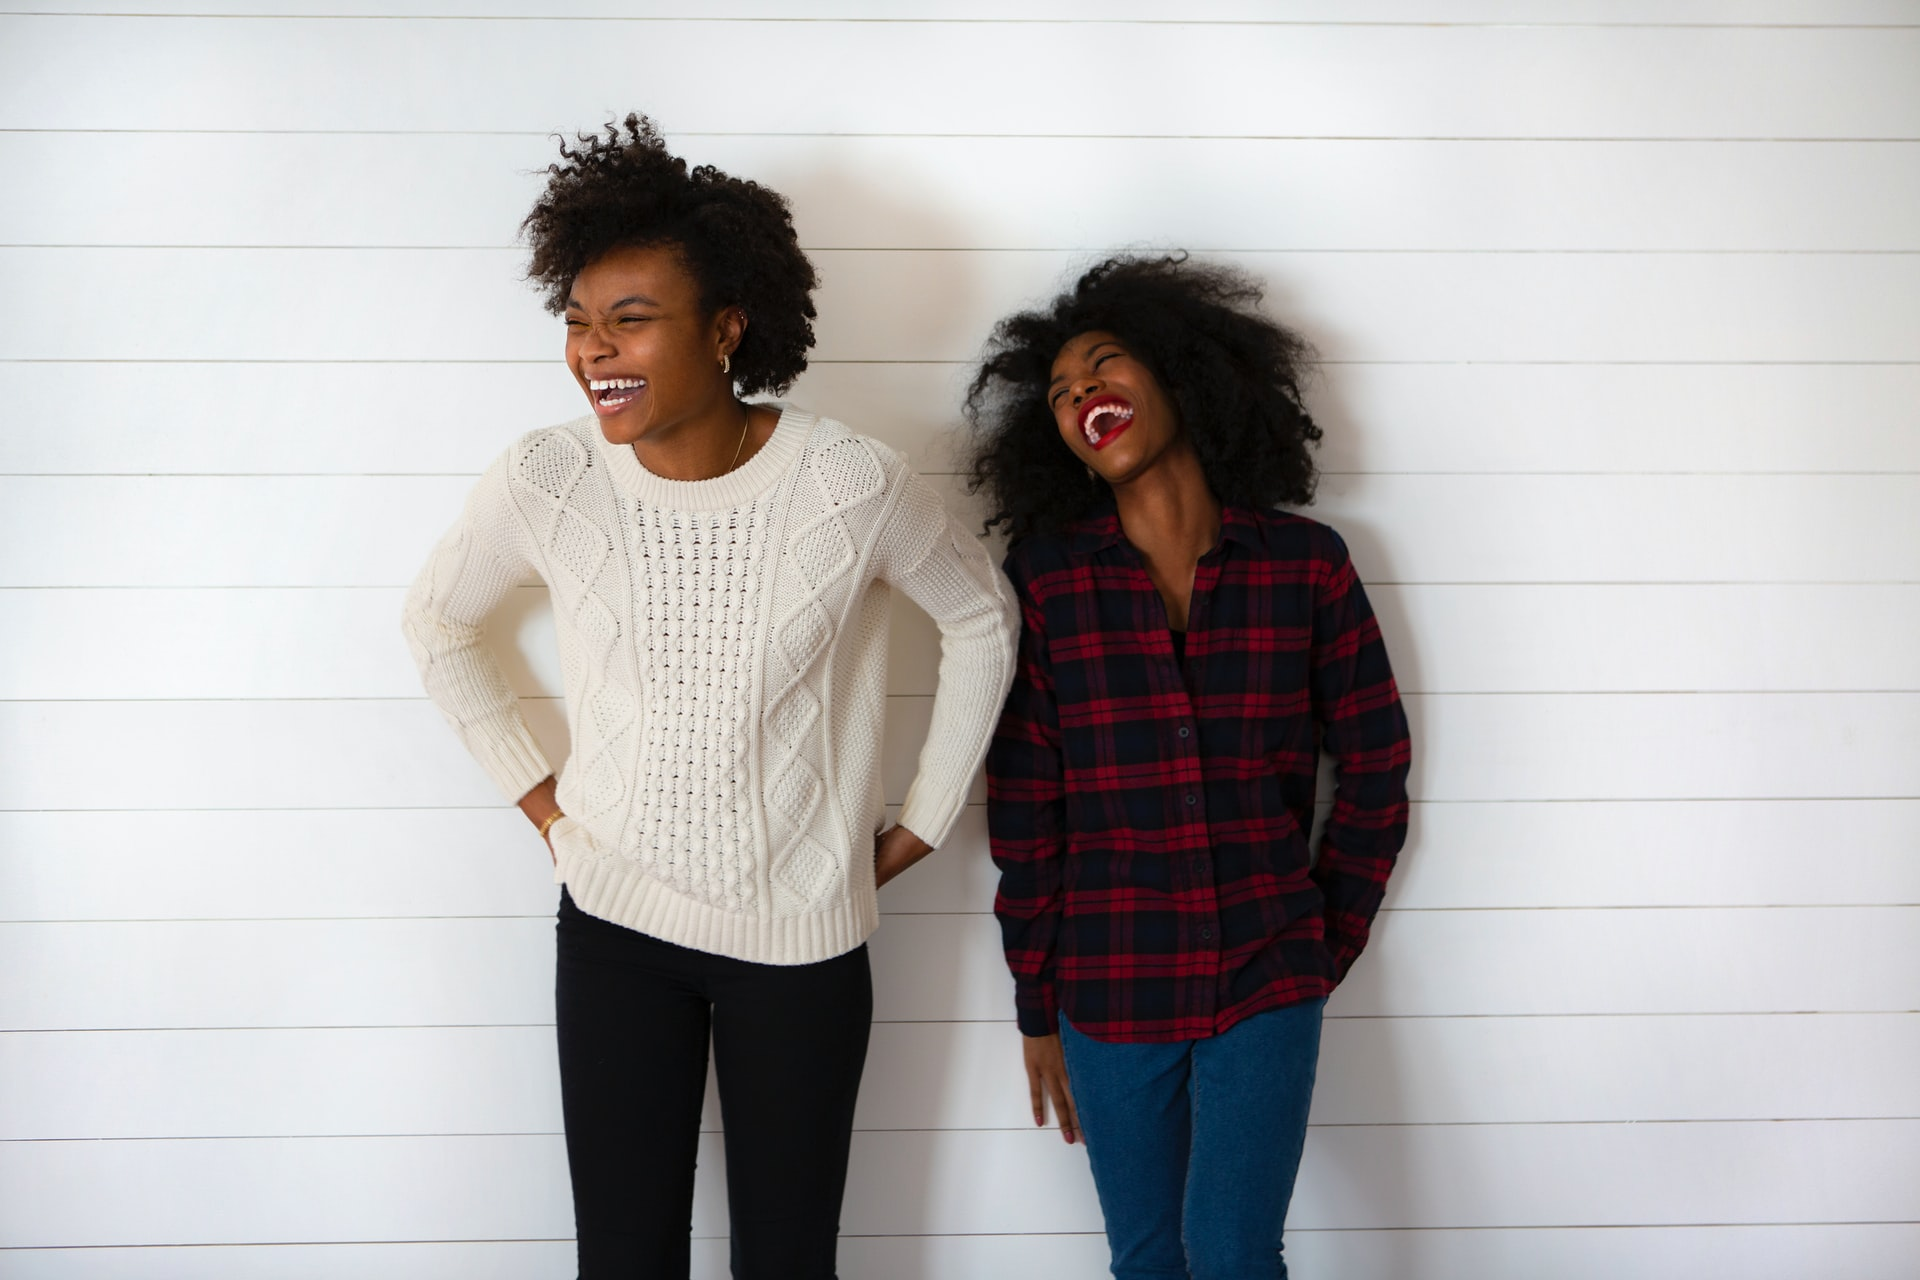 Two women stand against a wall and laugh.